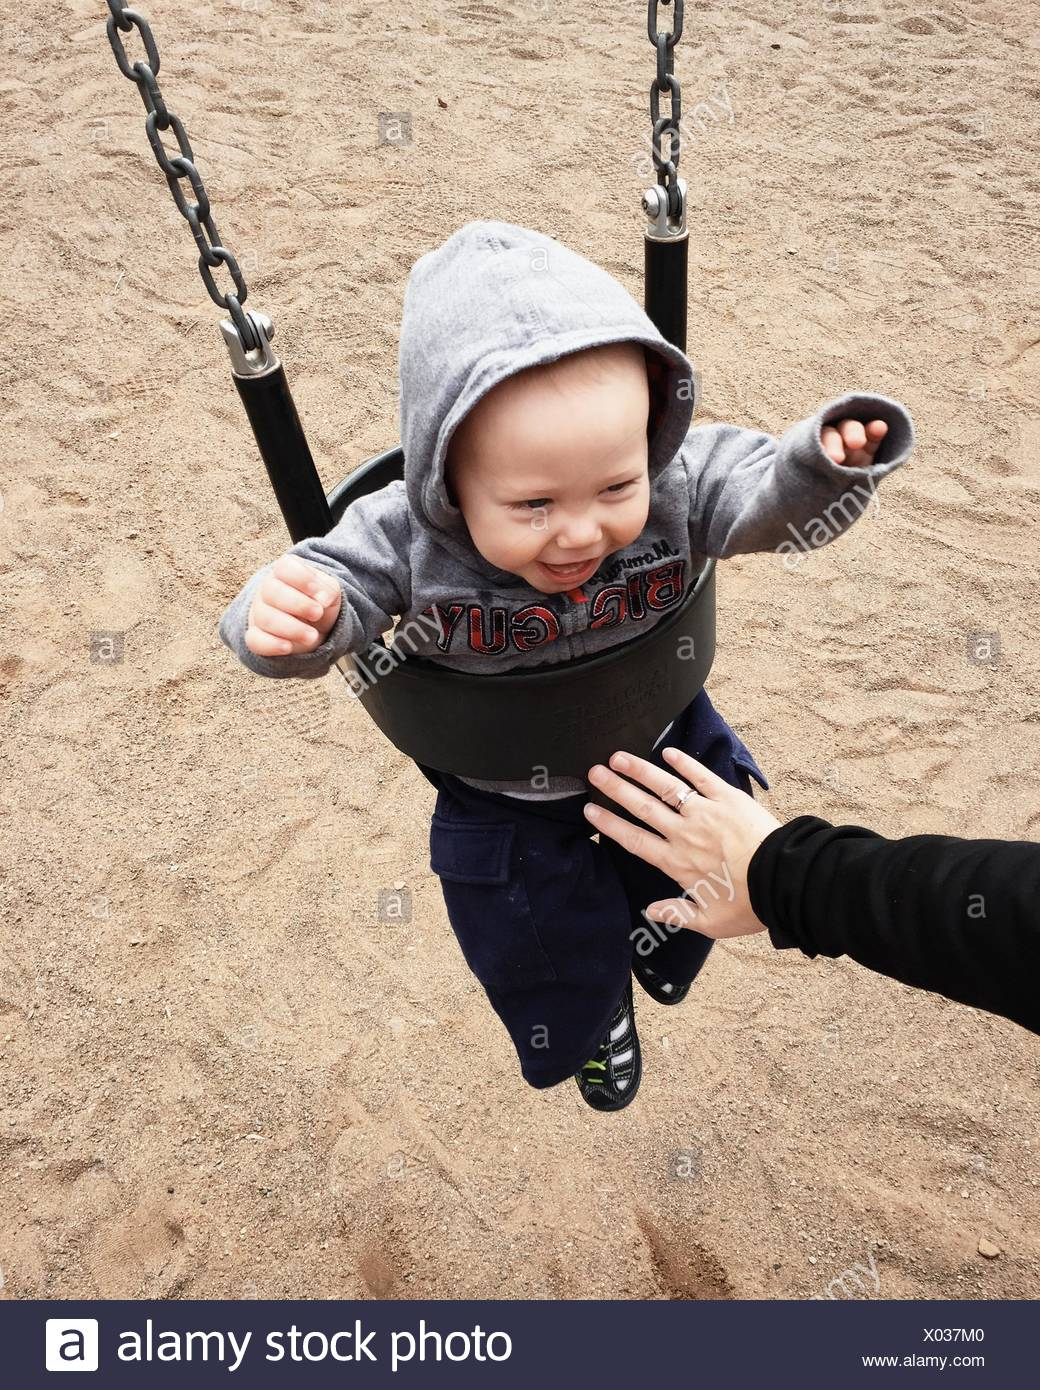 Cropped Image Of Parent Pushing Baby Boy In Swing At Park - Stock Image